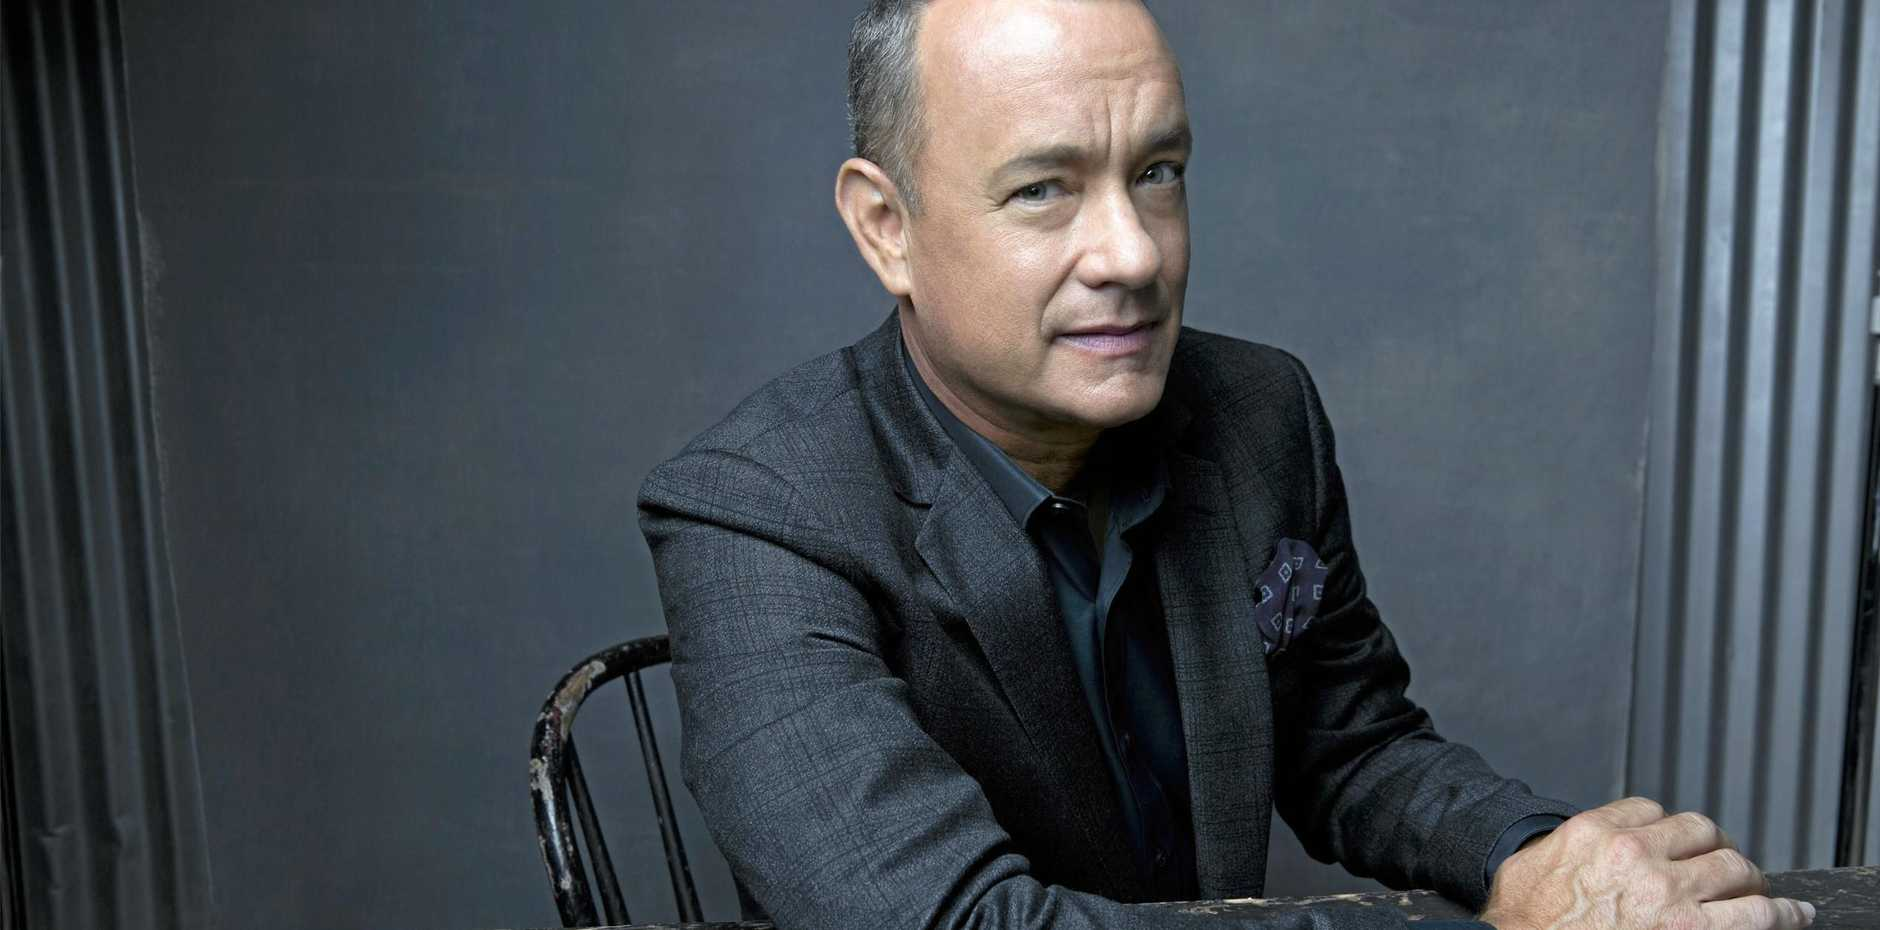 Tom Hanks has released a collection of short stories, Uncommon Type: Some Stories.